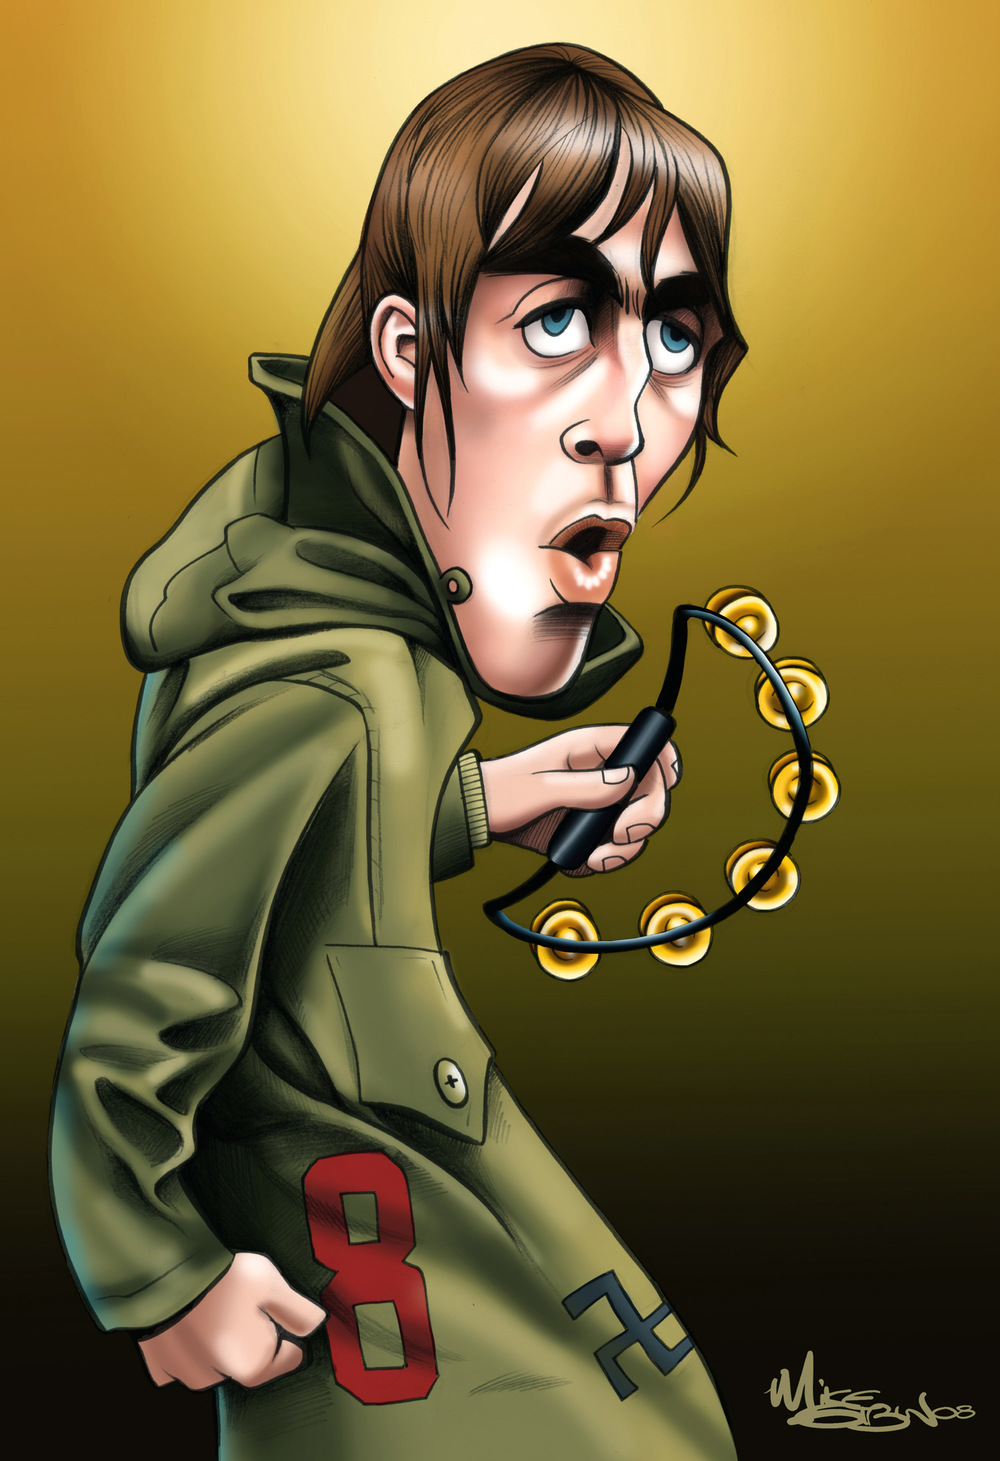 Liam Gallagher by Mike Giblin